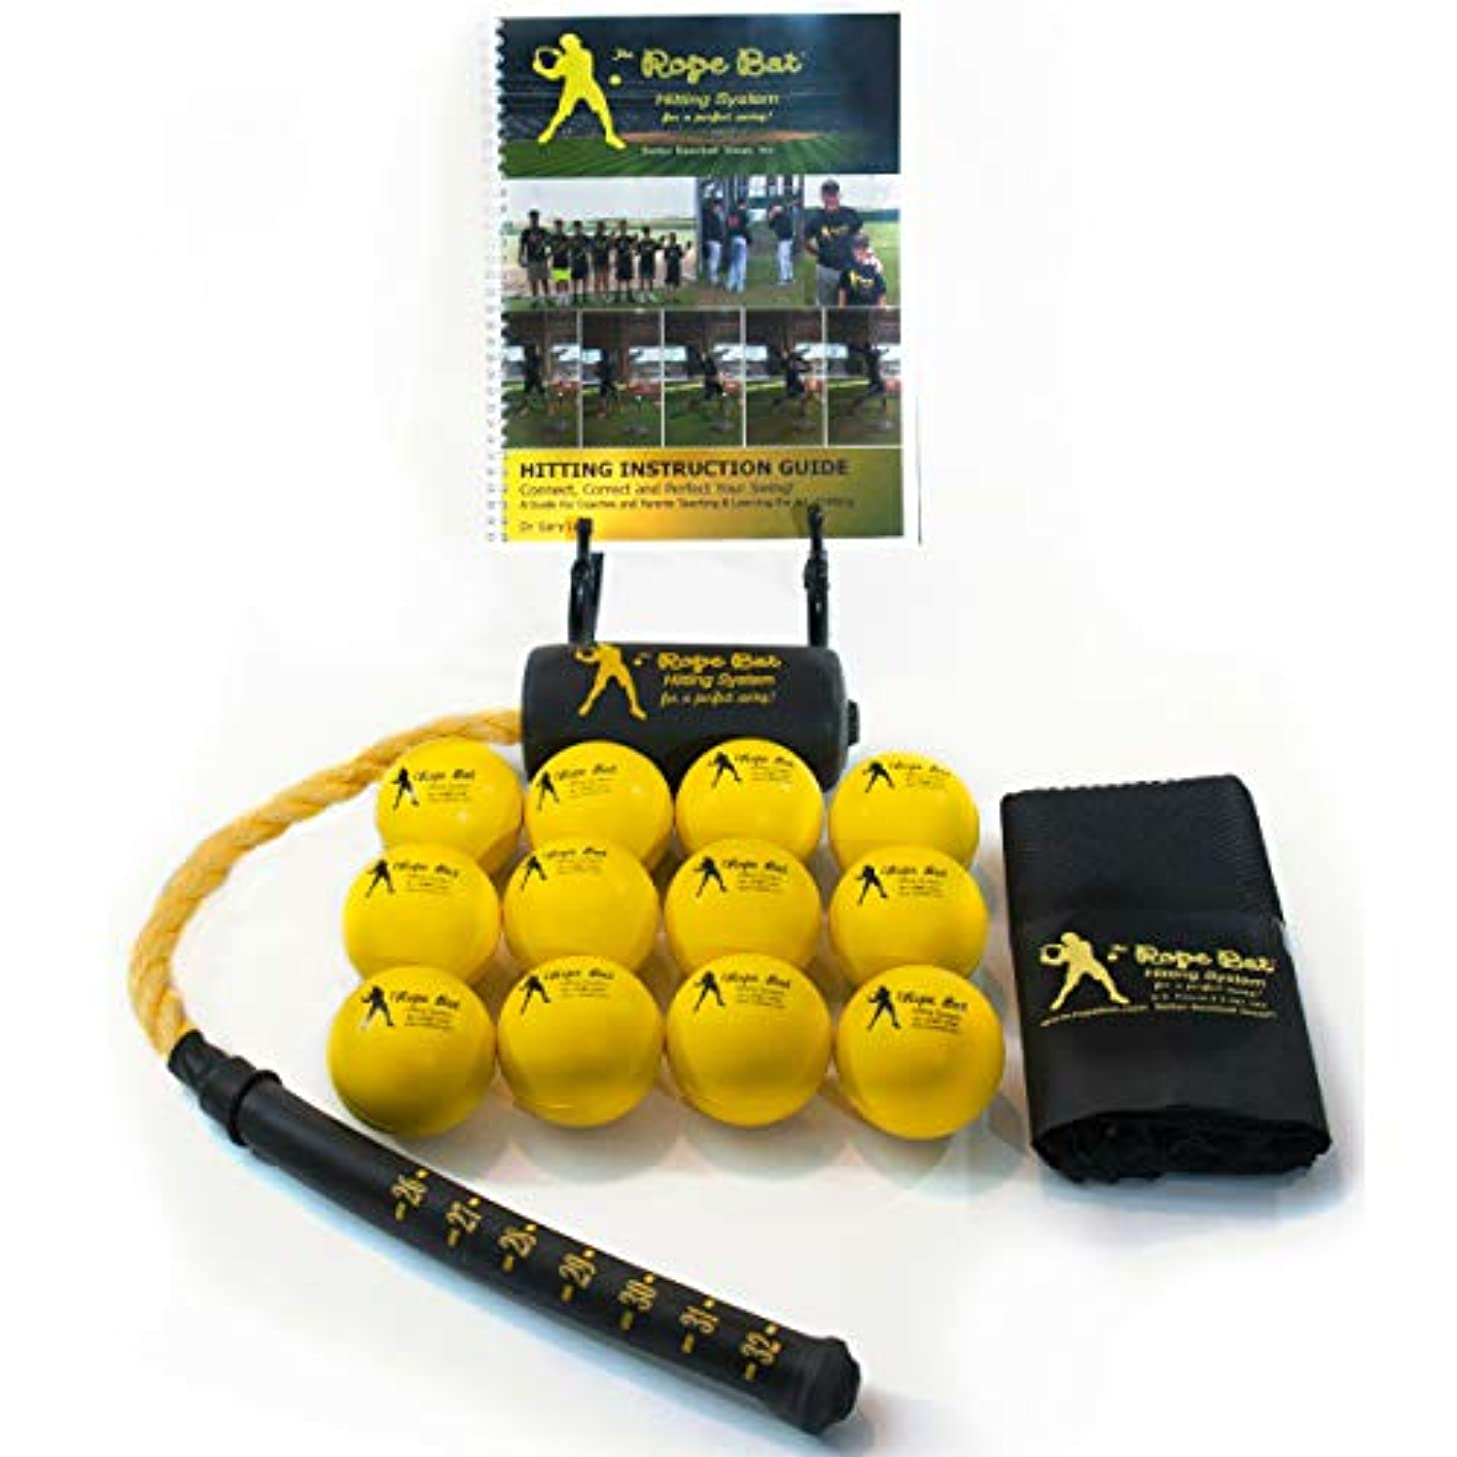 Rope Bat - Ultimate Rope Bat Hitting System Combo w/ 12 Smushballs - Baseball & Softball Swing Trainer, Training Tool, Batting Aid